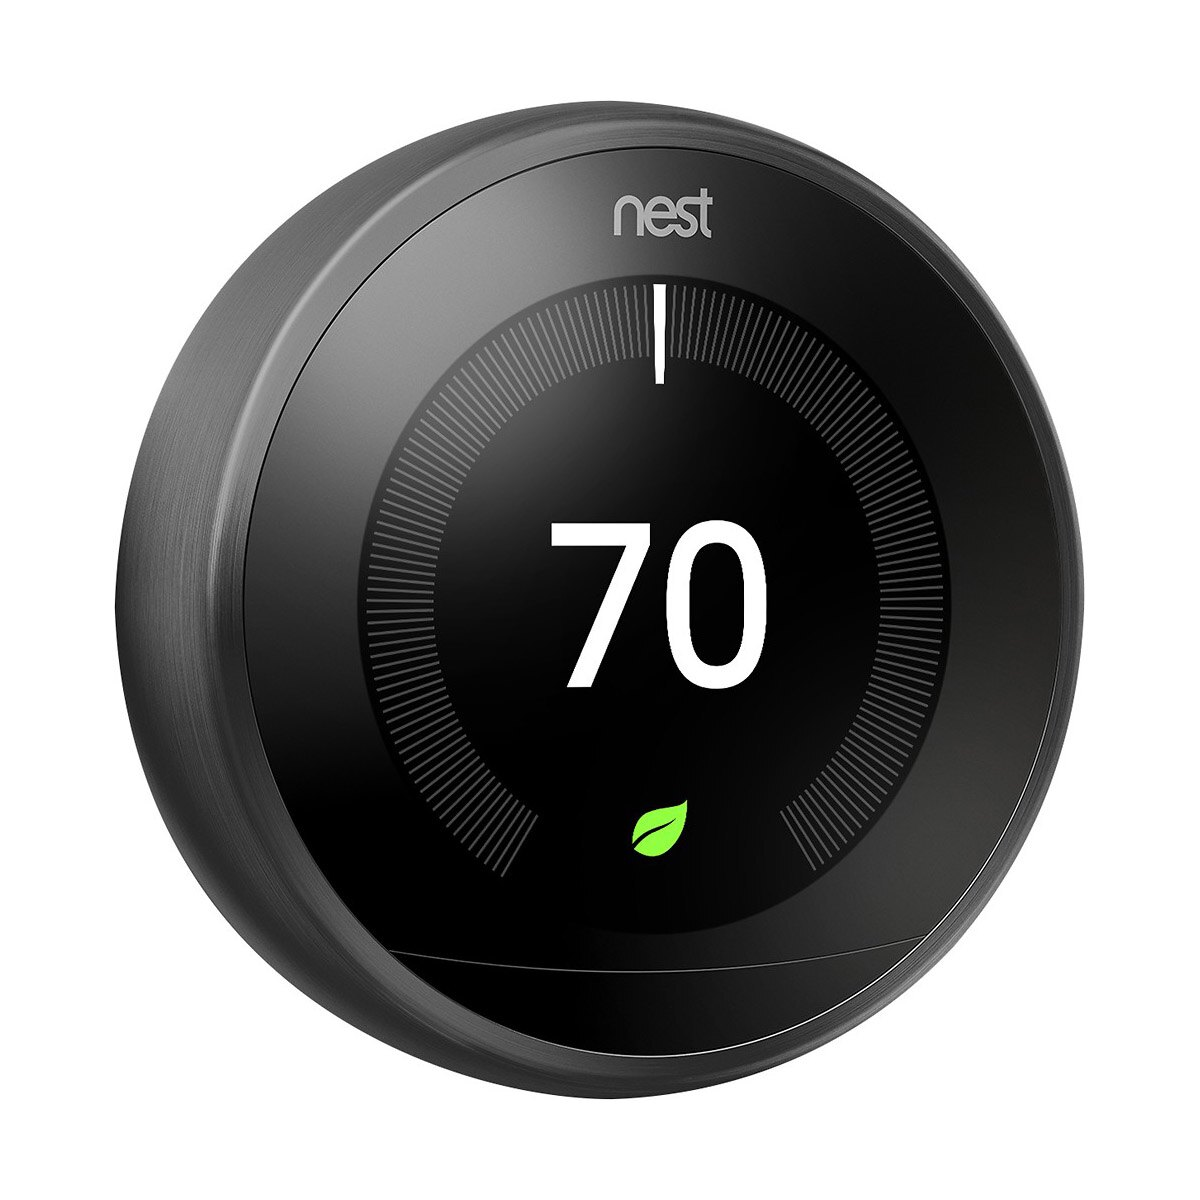 Nest 3rd Generation Programmable Wi-Fi Smart Learning Thermostat T3016US - Black 1